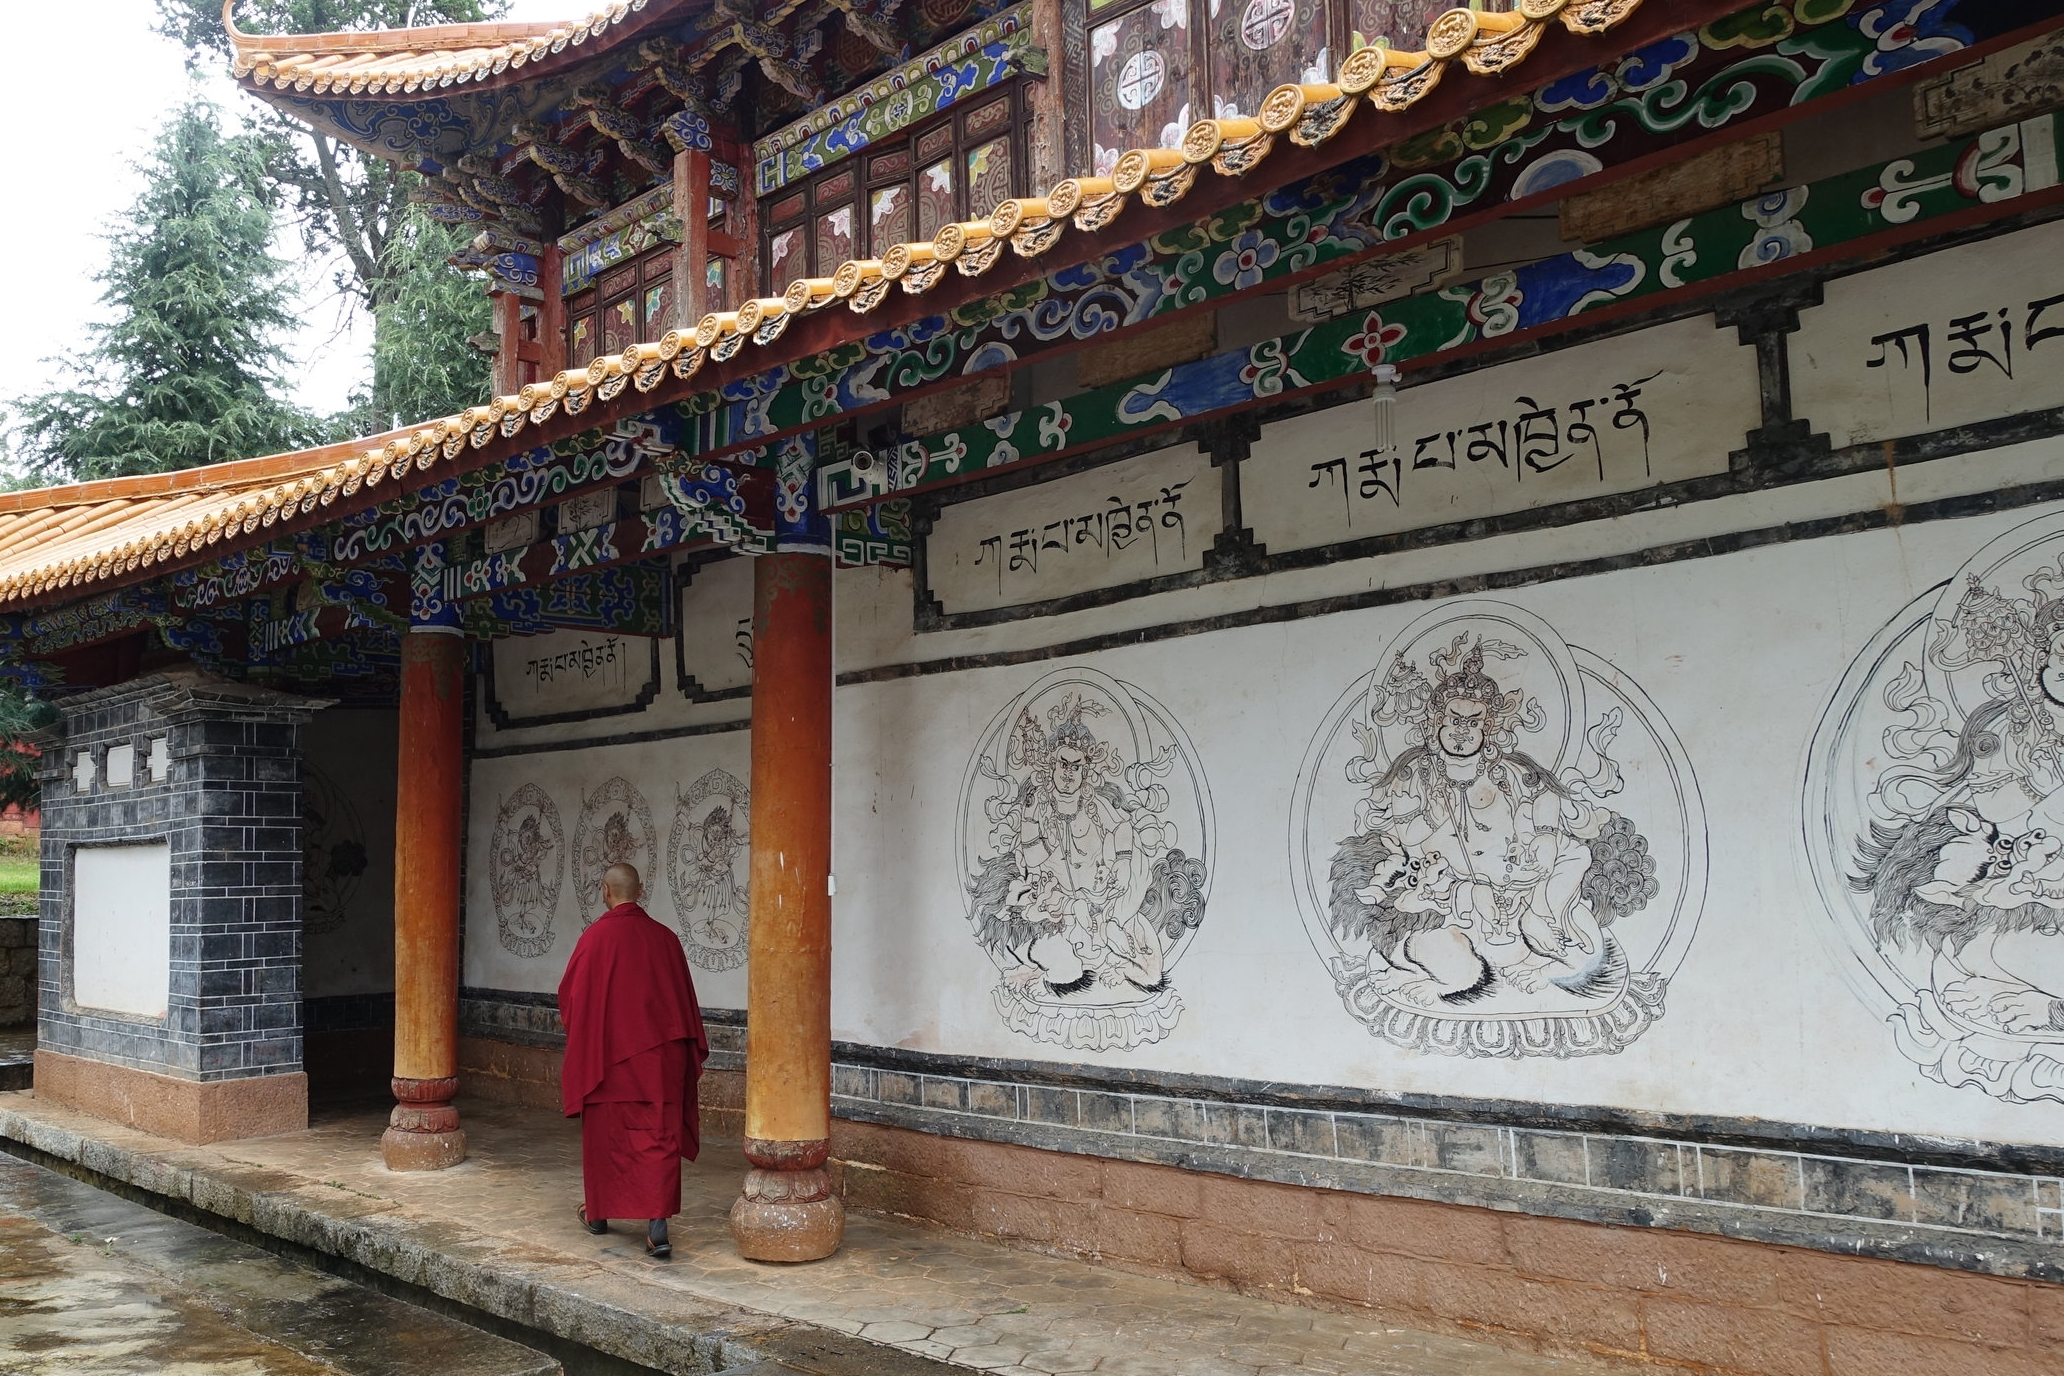 Between religious and popular customs, between rural tradition and urban modernity, Lashihai truly is a unique place to visit.